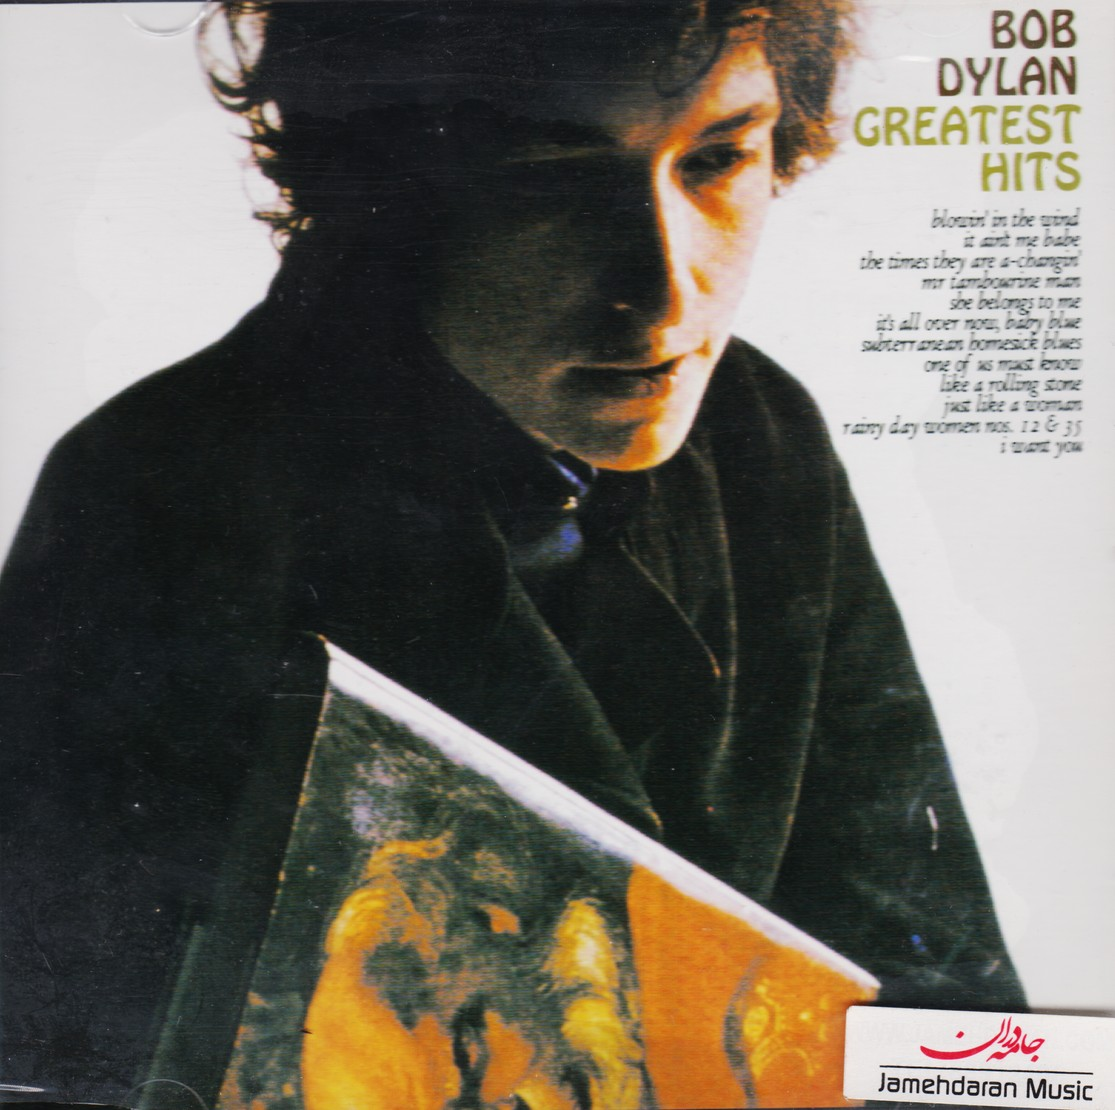 bob dylan / greatest hits